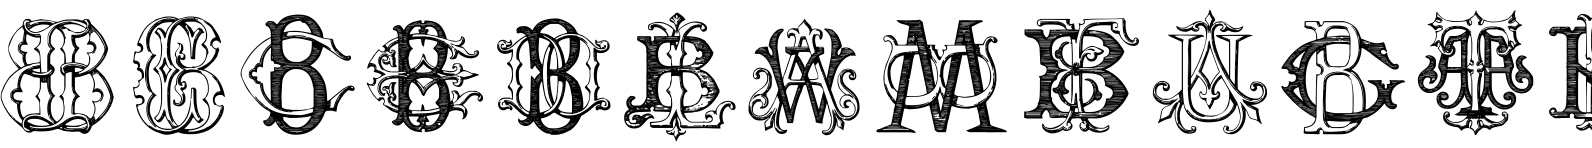 Intellecta Monograms ATBM Font